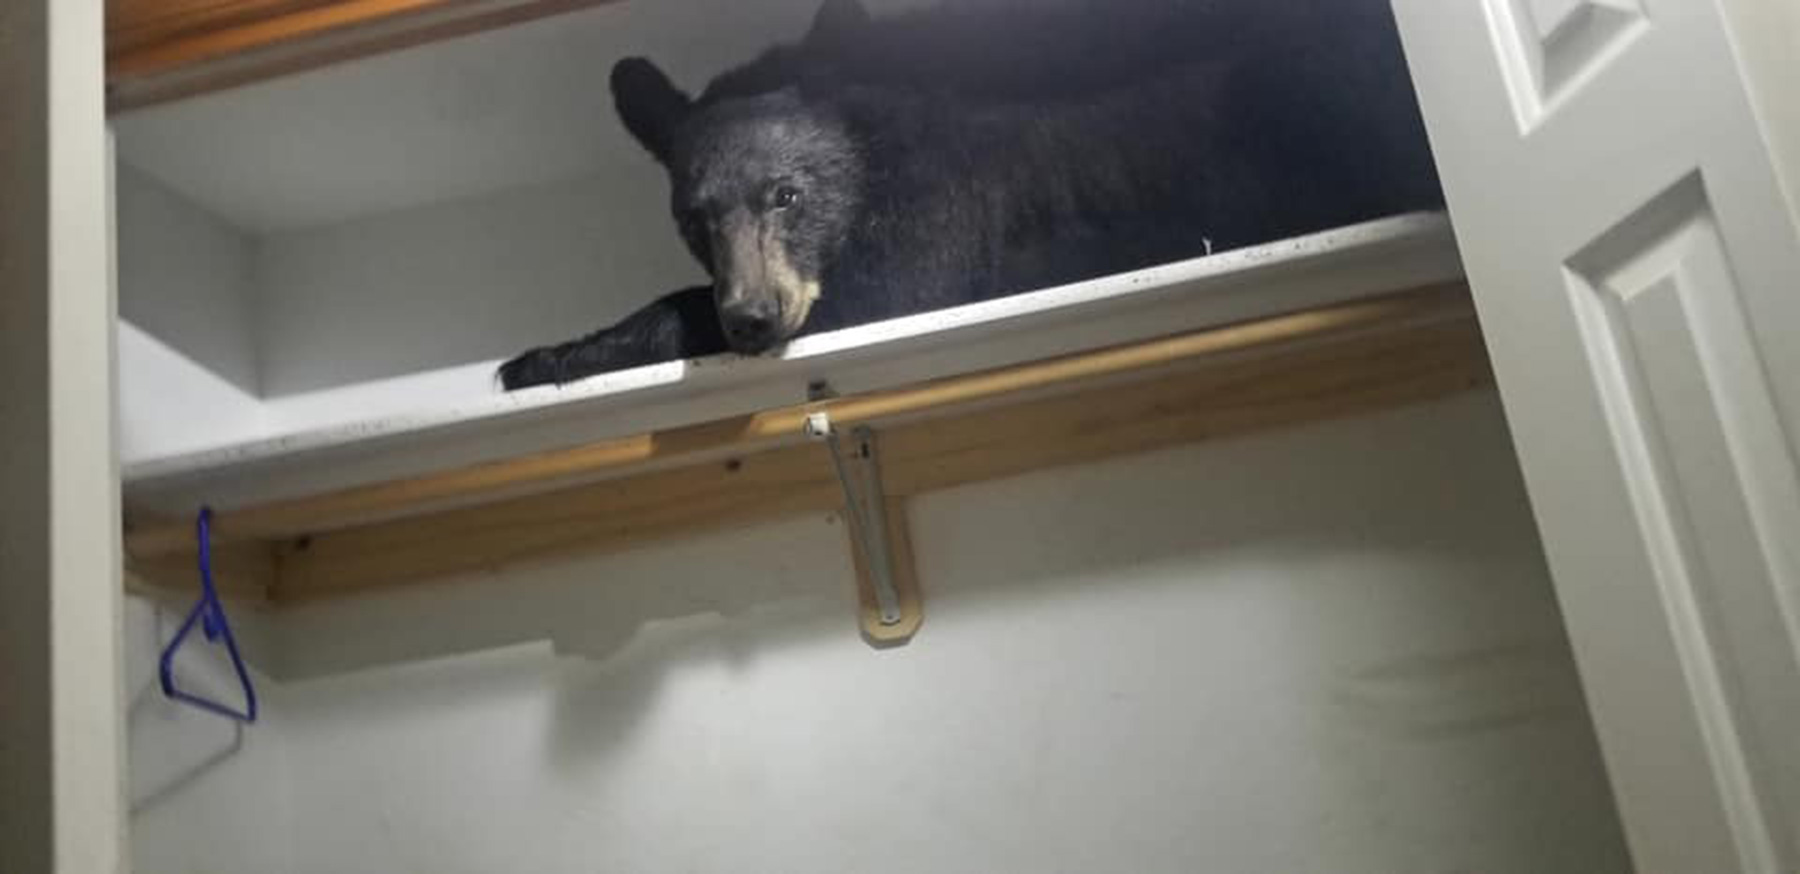 Deputies responded to a call up Butler Creek for a bear stuck inside a home